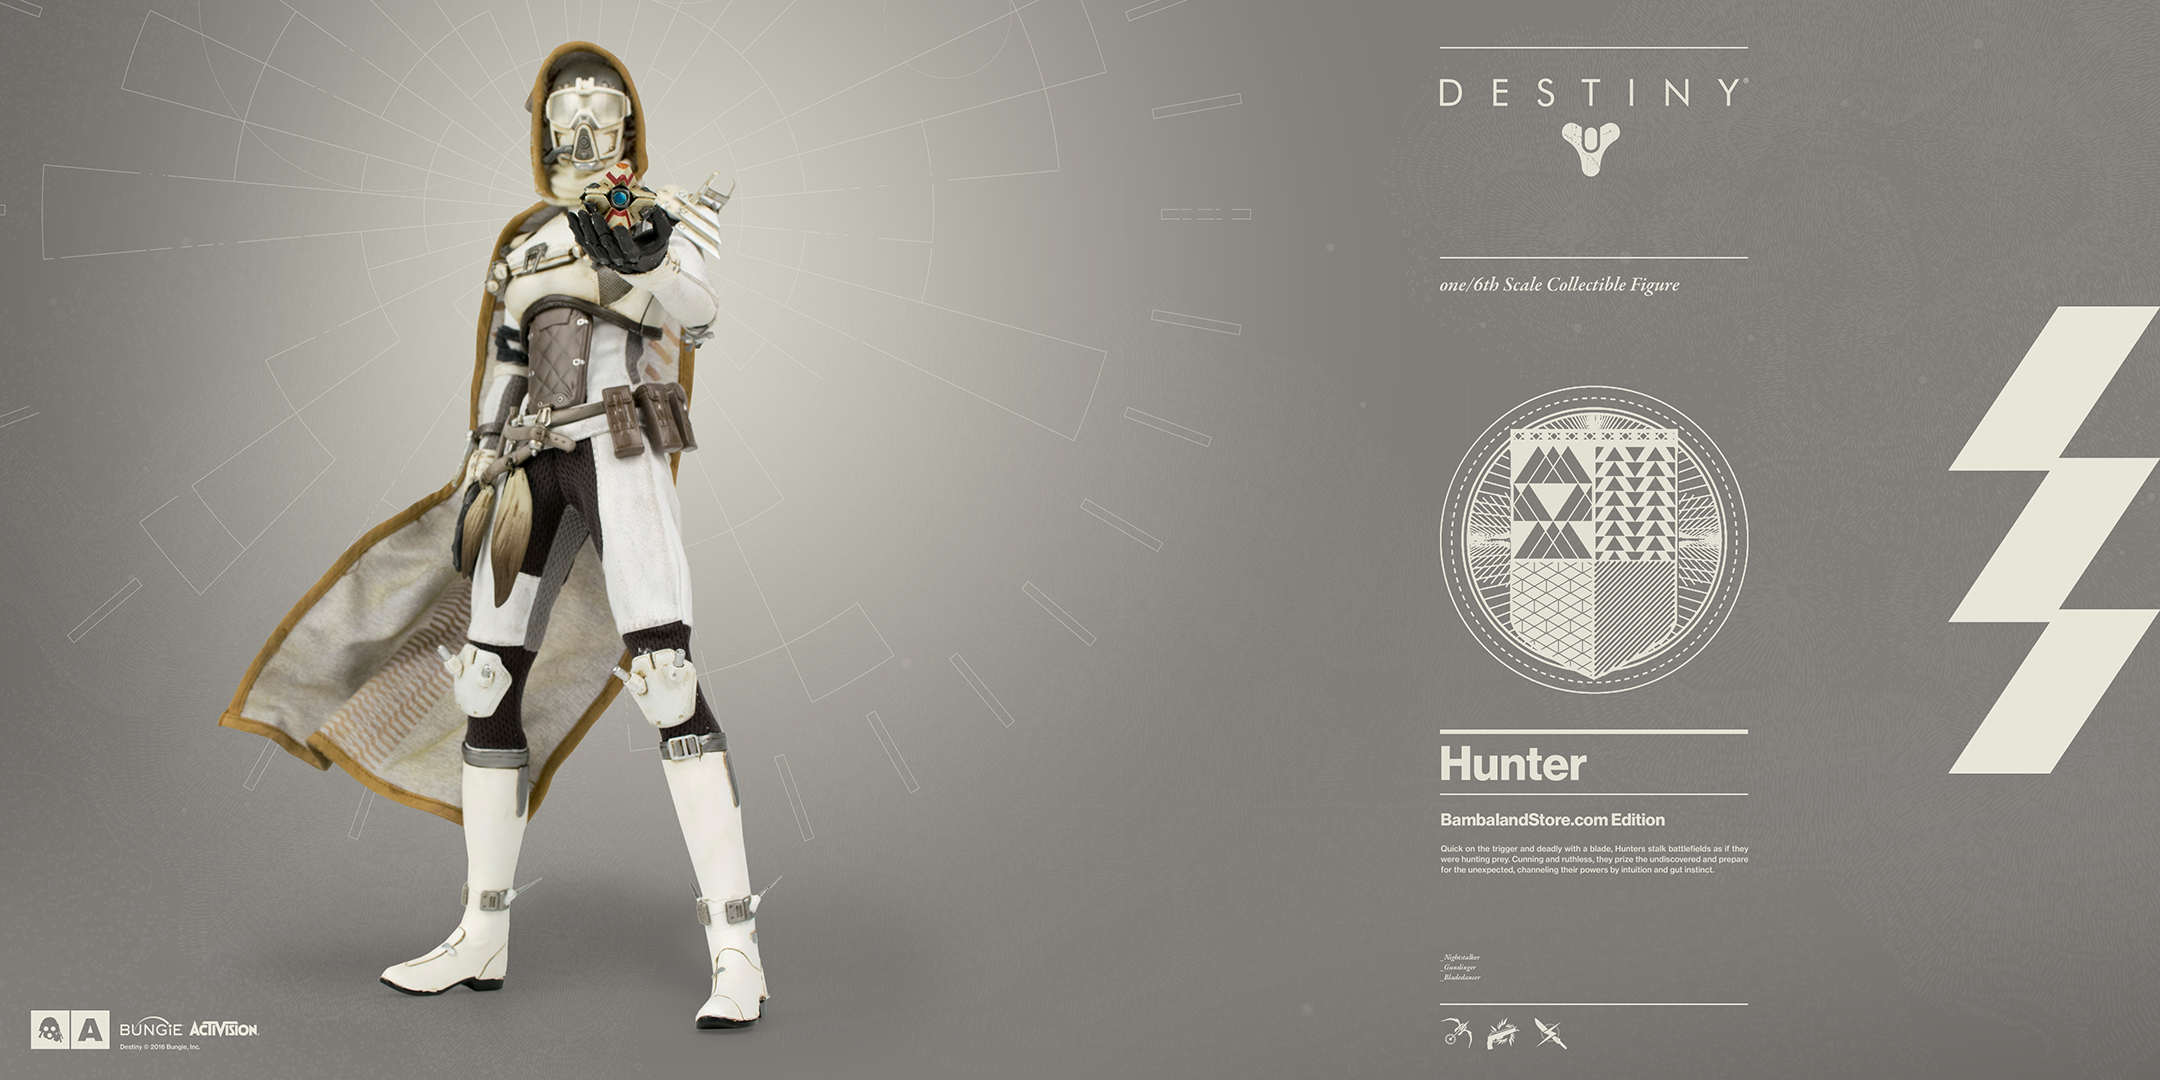 3A_Destiny_Hunter_BambalandStoreEdition_Landscape_Left_v002.png